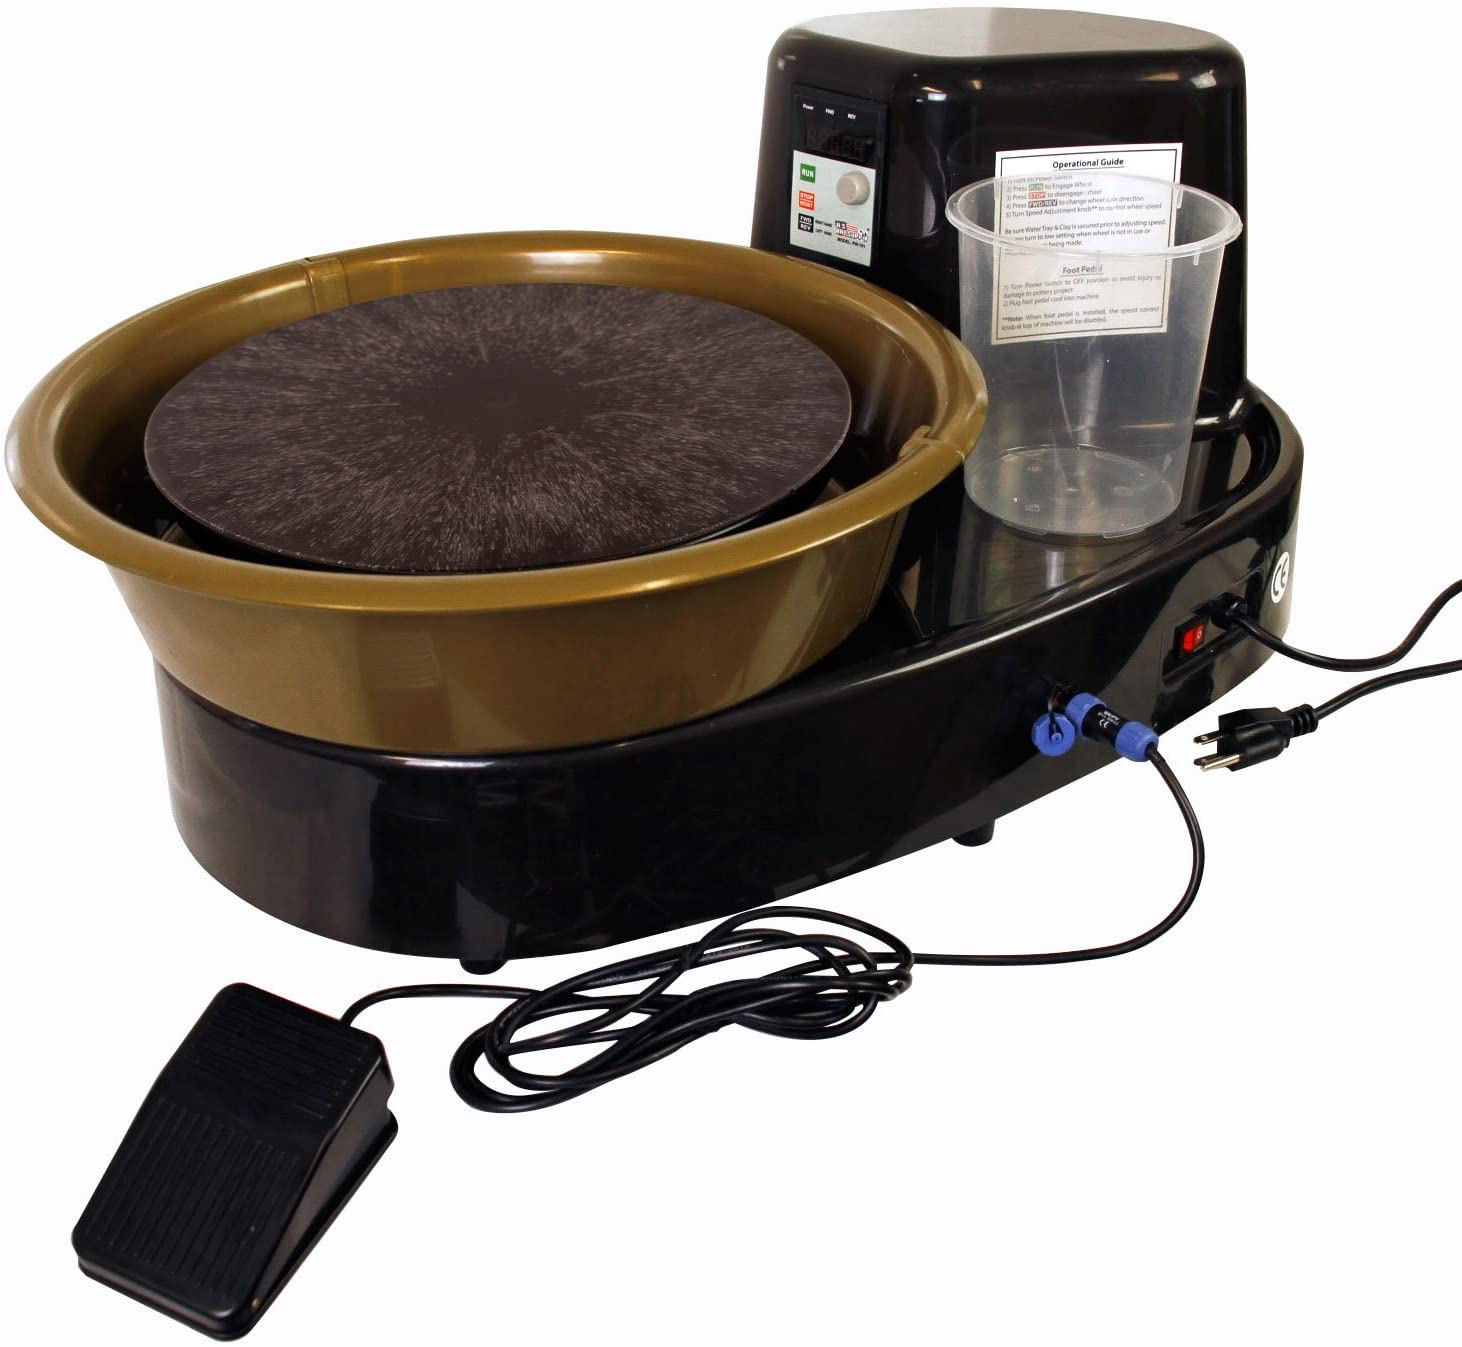 U.S. Art Supply 3:4 –HP Table Top Pottery Wheel with LCD Wheel Speed Display